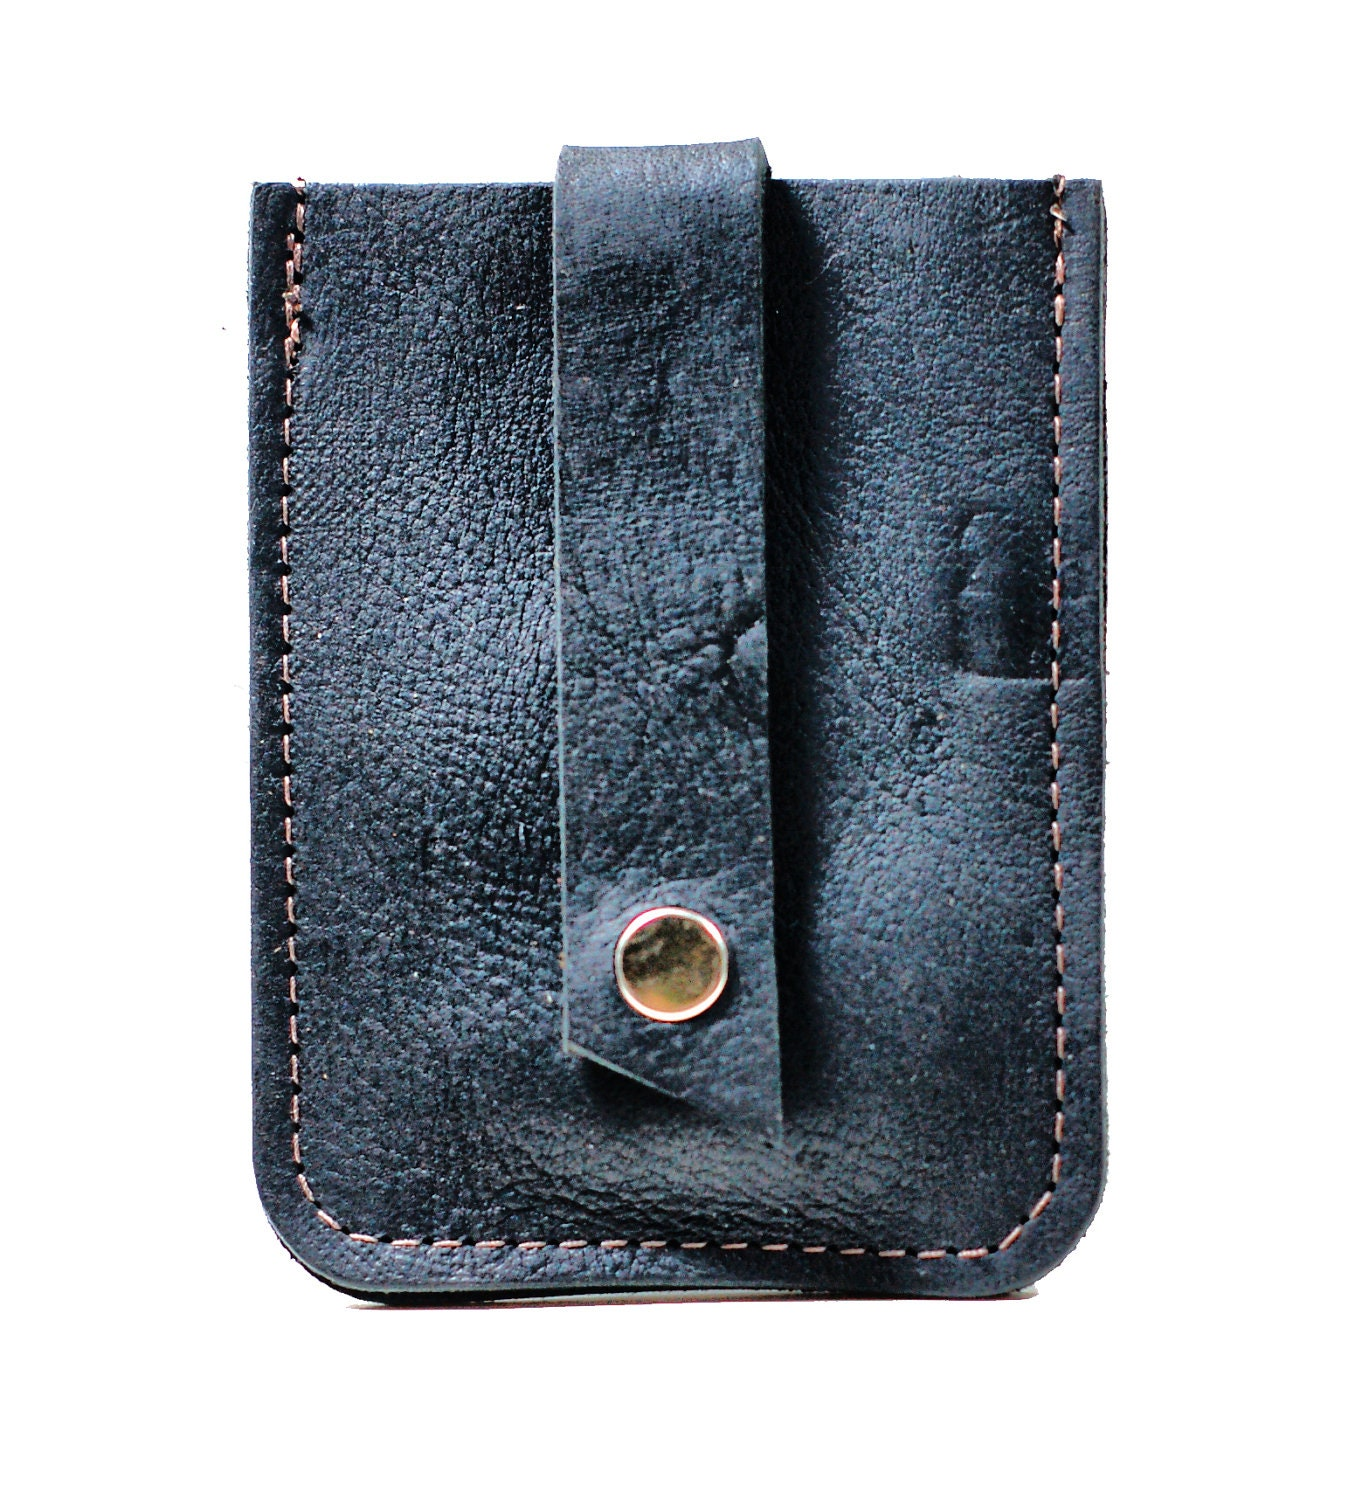 Skinny Leather Wallet Slim Pop Up Business Card Holder And